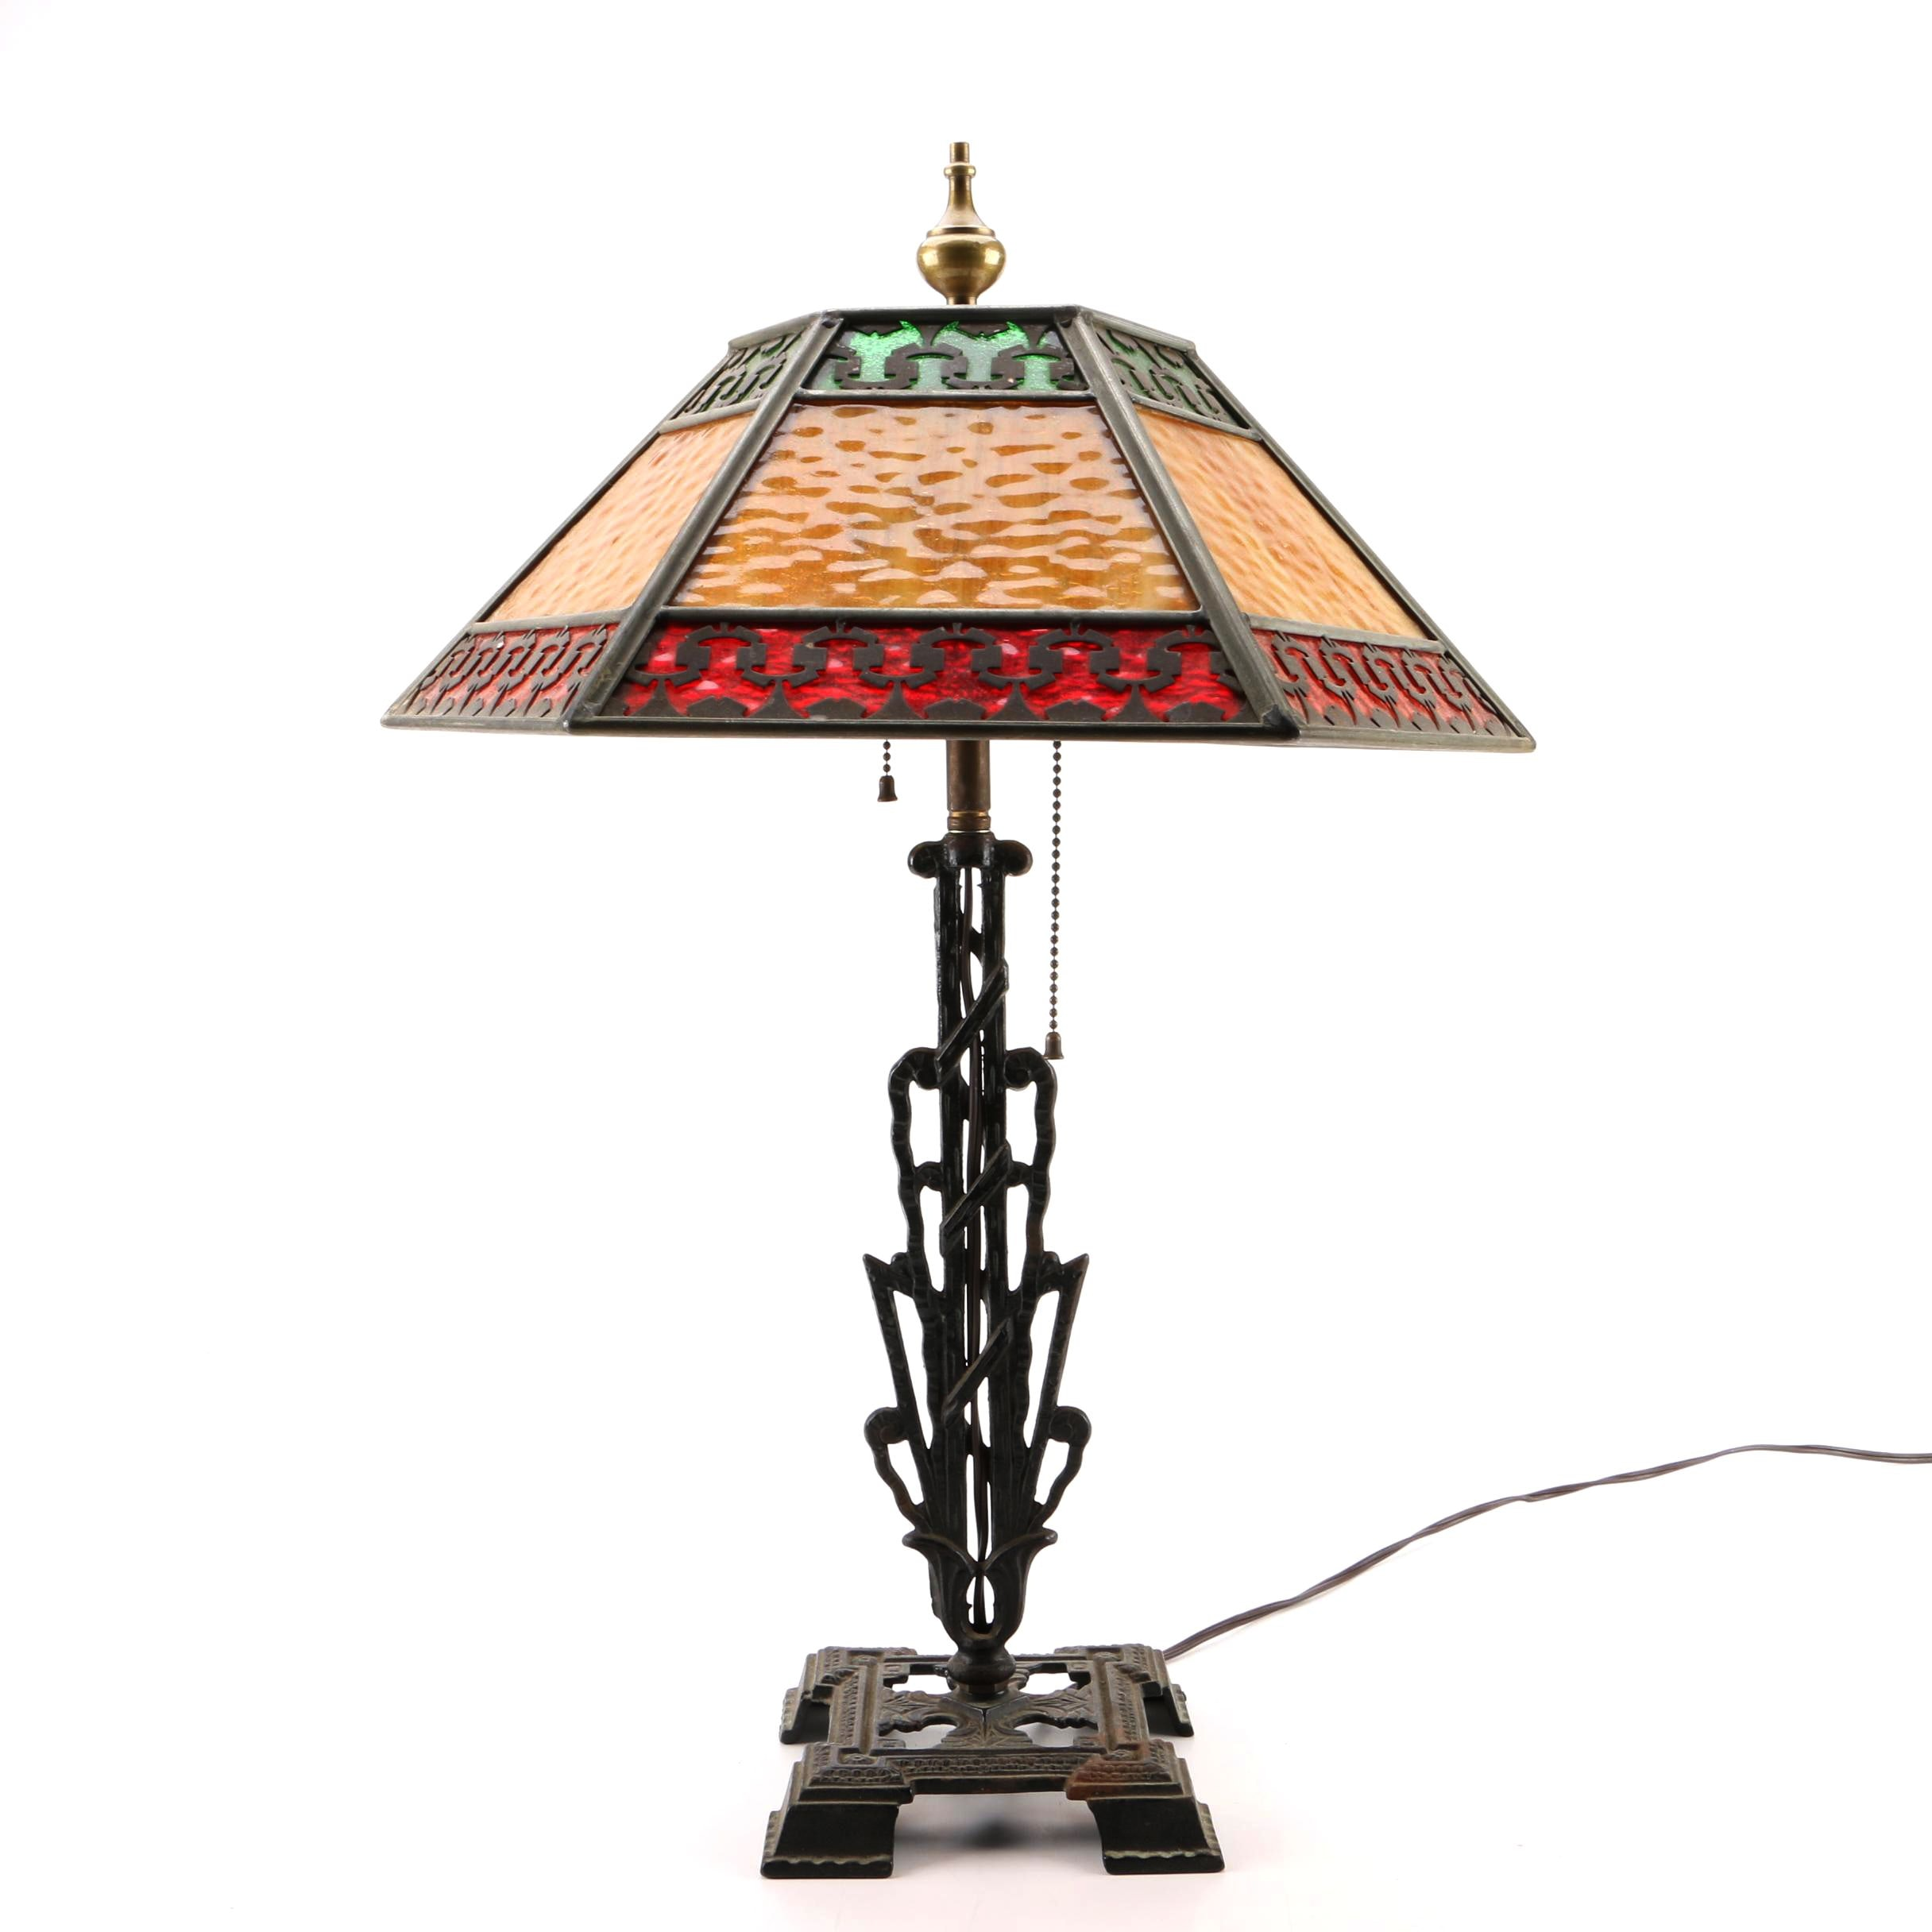 Vintage Unique Arts and Crafts Style Table Lamp